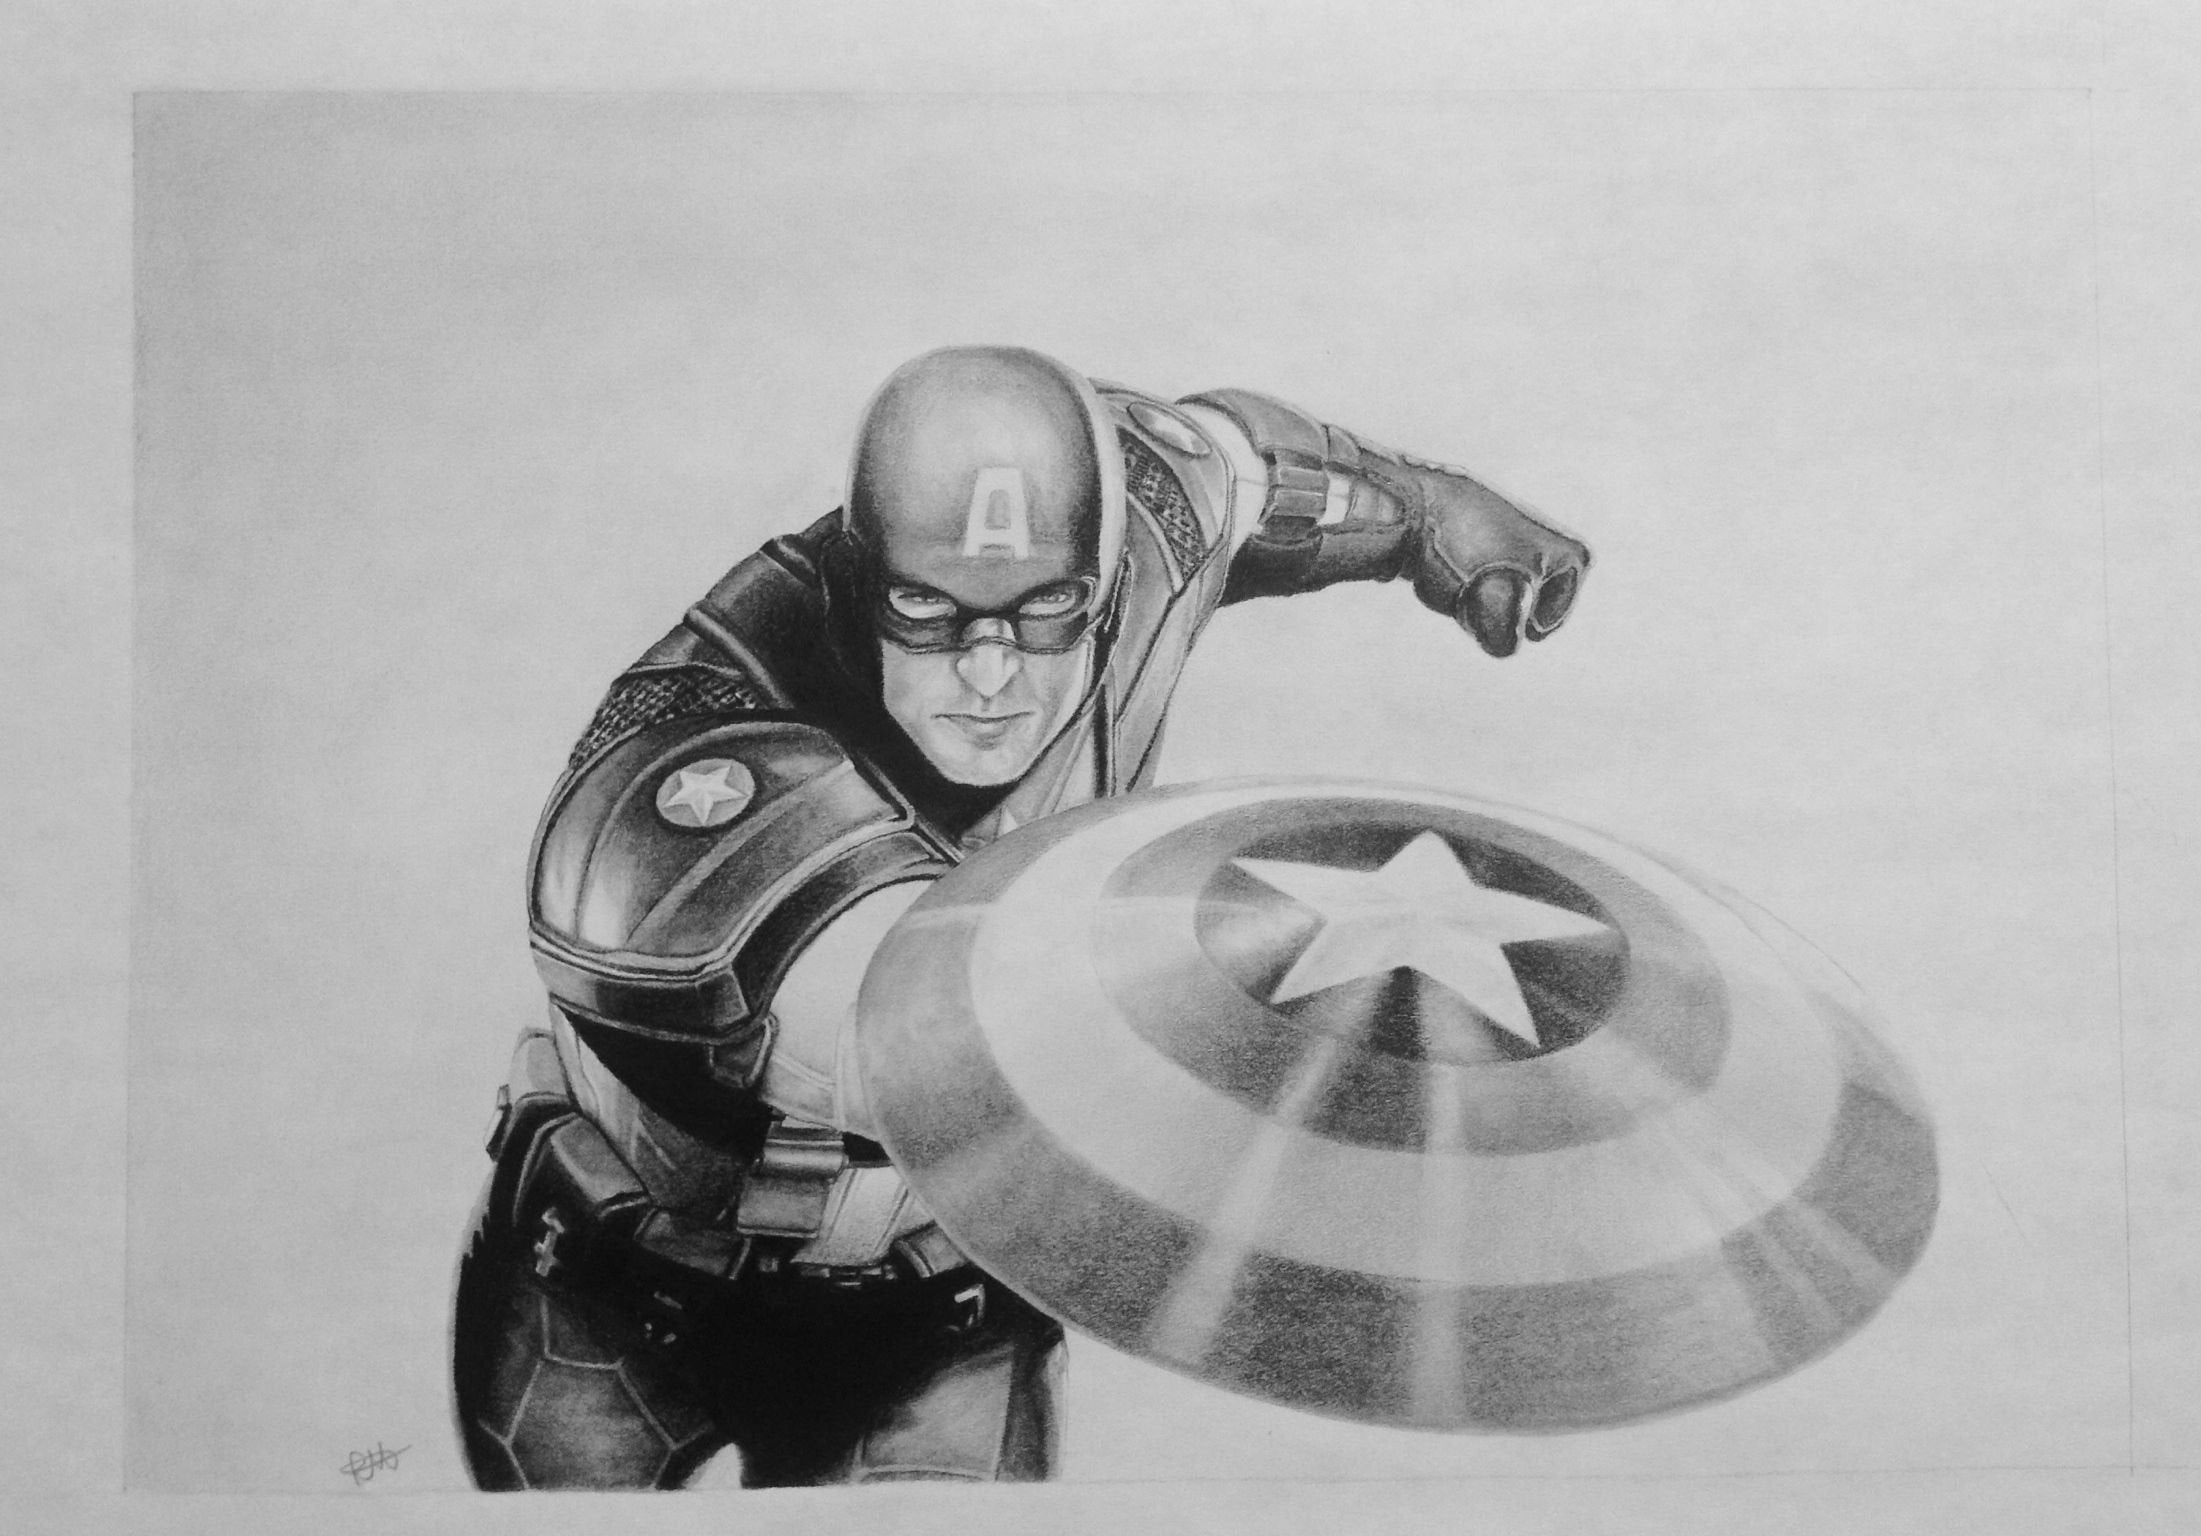 captain america pictures captain america face black and white simple 9 free hq pictures captain america